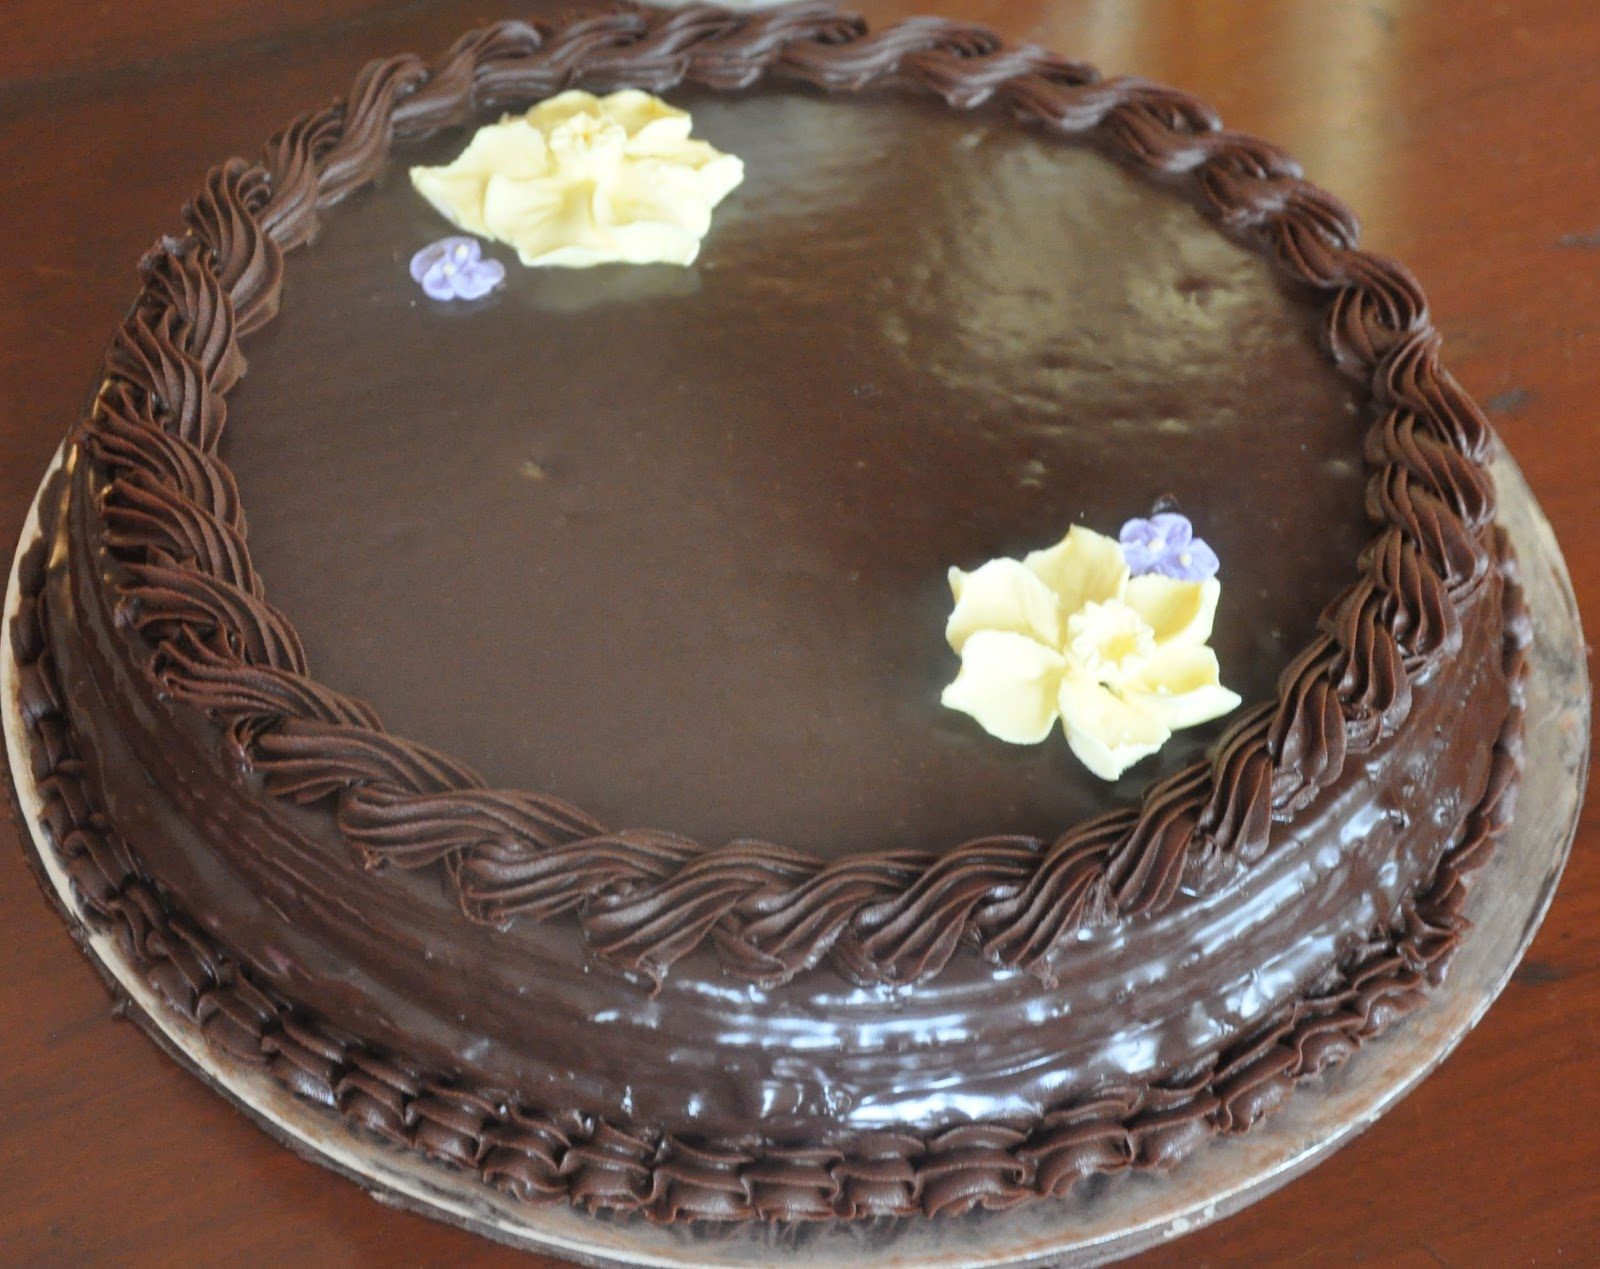 Cake Decoration With Chocolate Ganache : Chocolate Ganache Cake Decorations